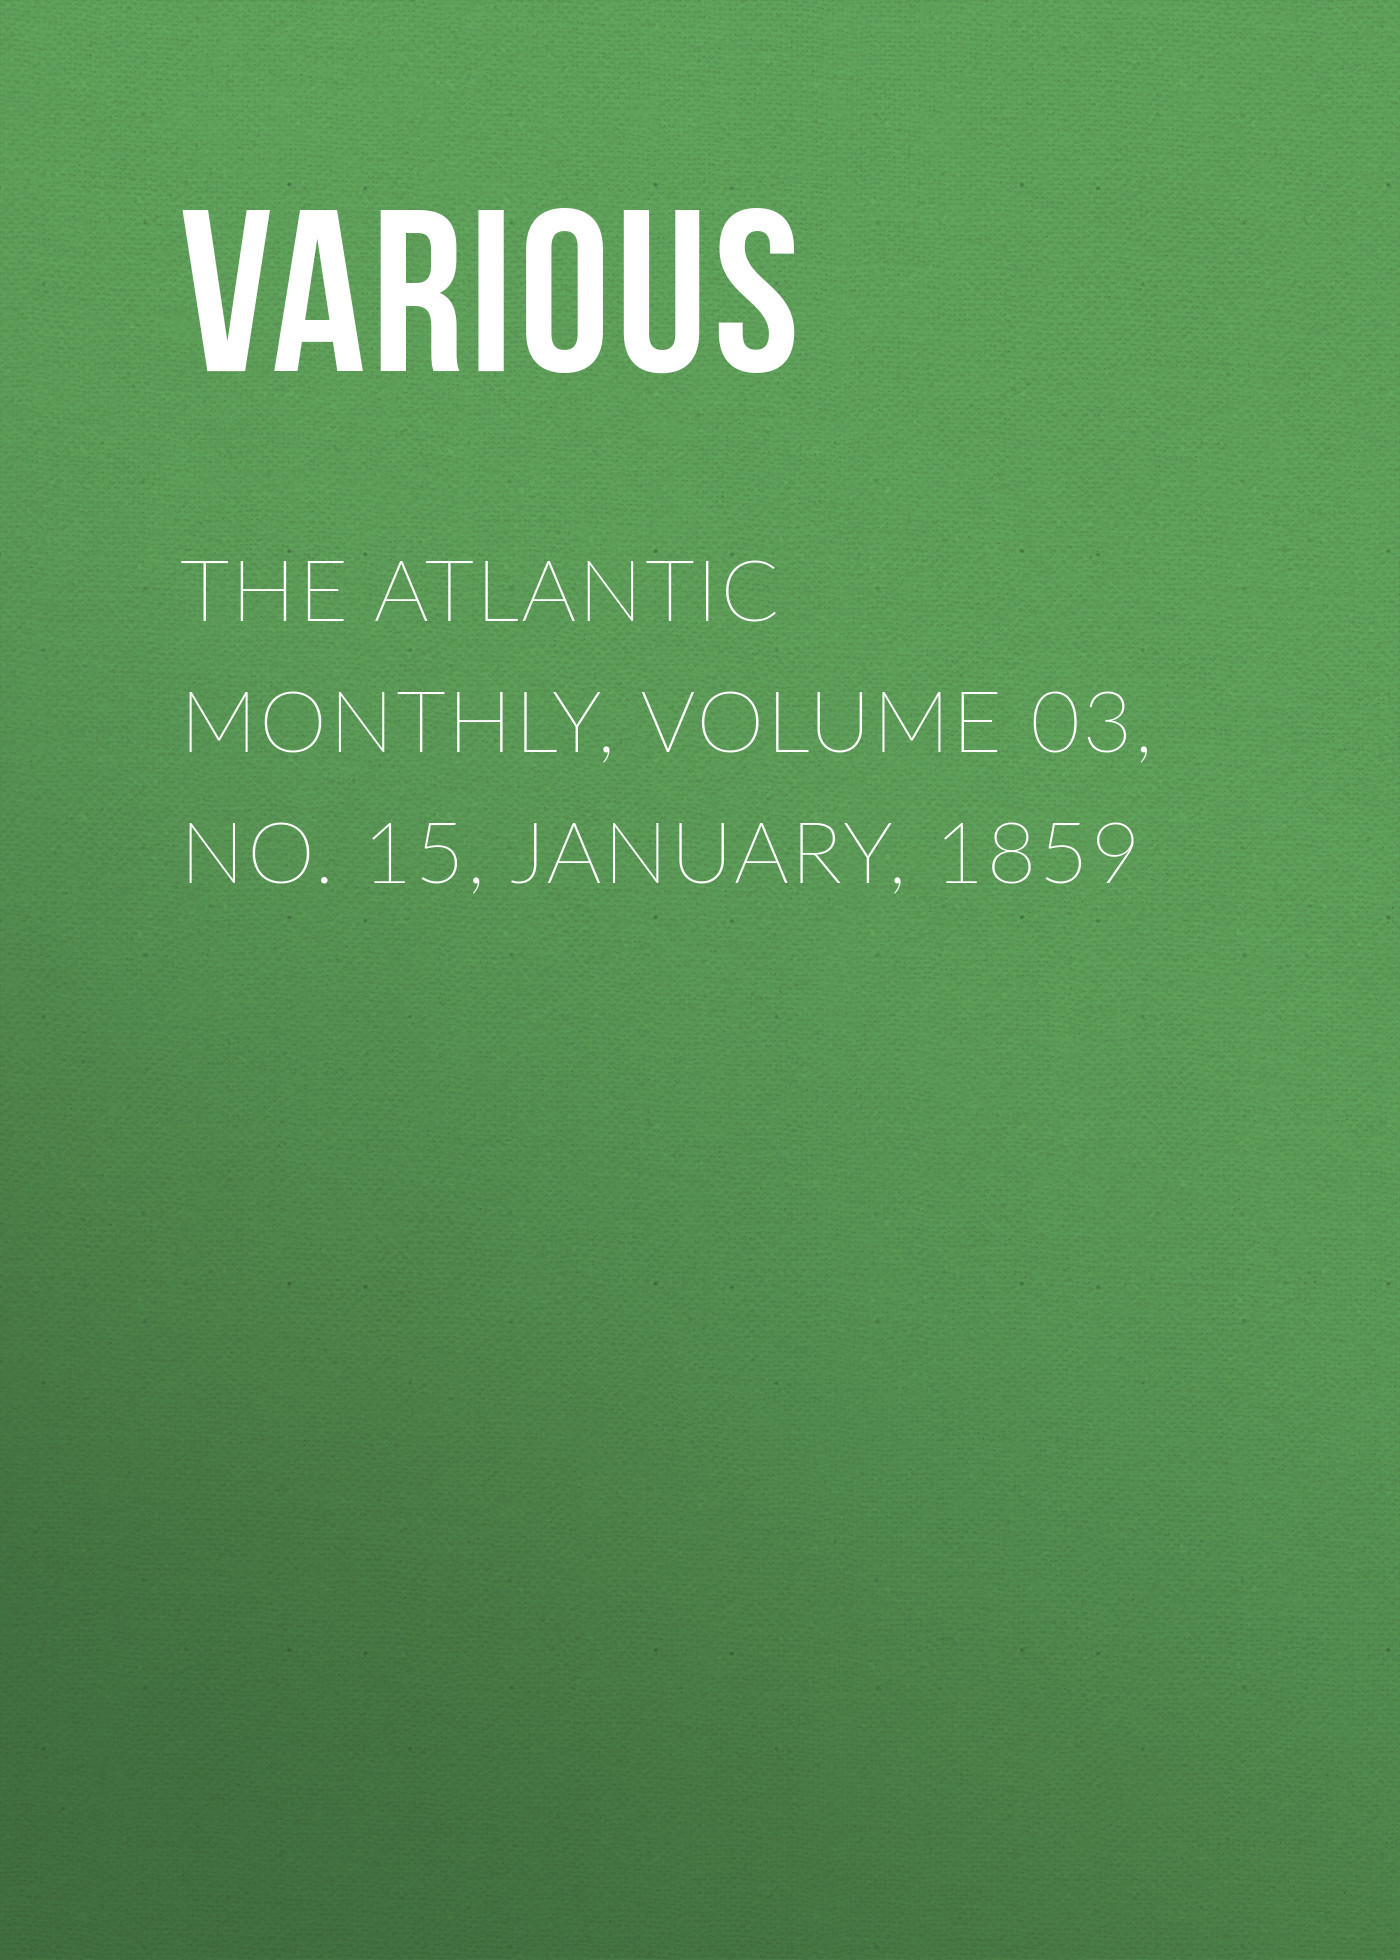 The Atlantic Monthly, Volume 03, No. 15, January, 1859